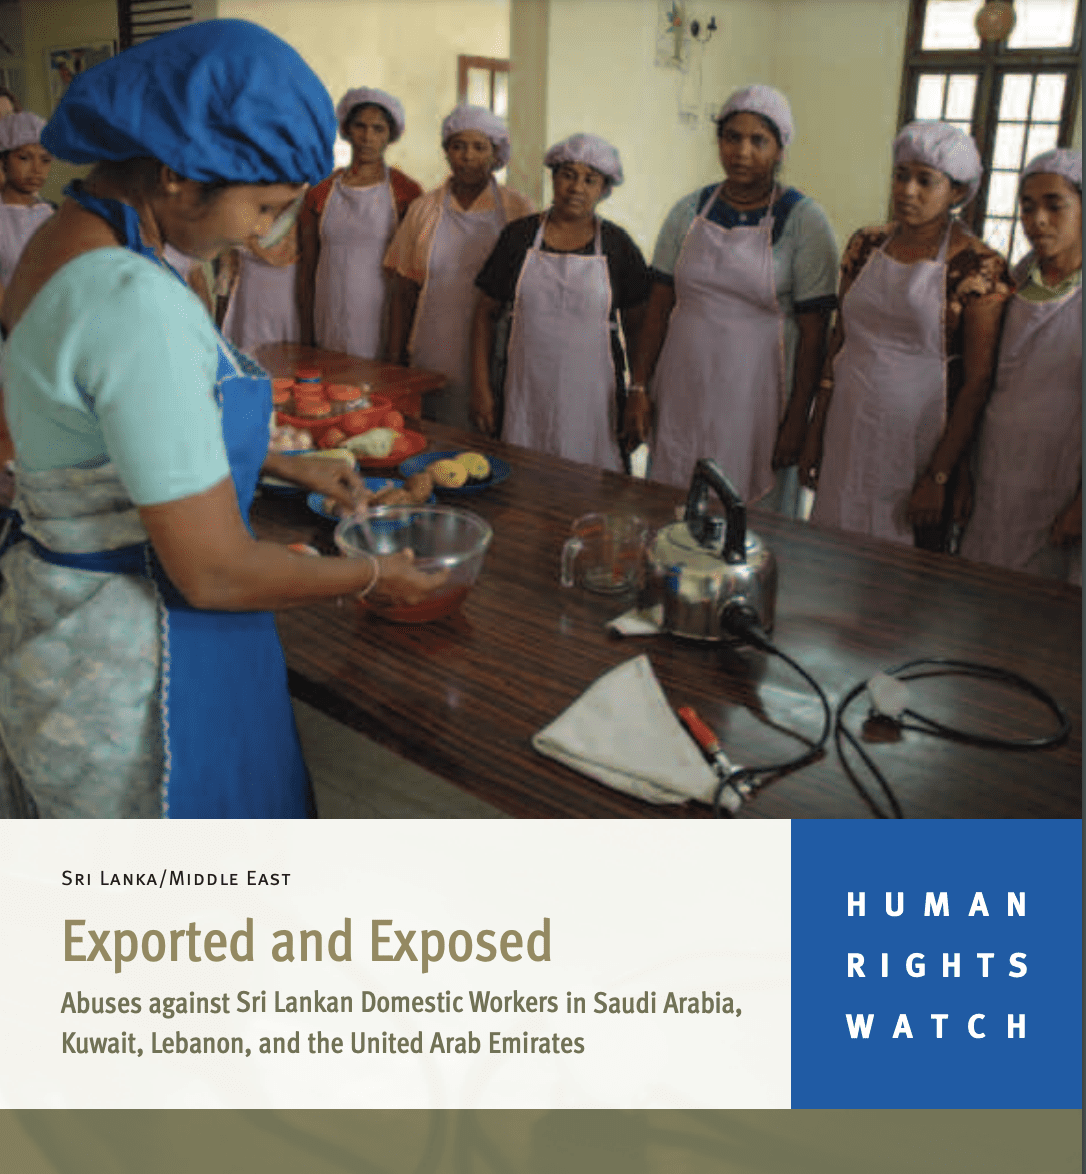 Exported and Exposed Abuses against Sri Lankan Domestic Workers in Saudi Arabia, Kuwait, Lebanon, and the United Arab Emirates